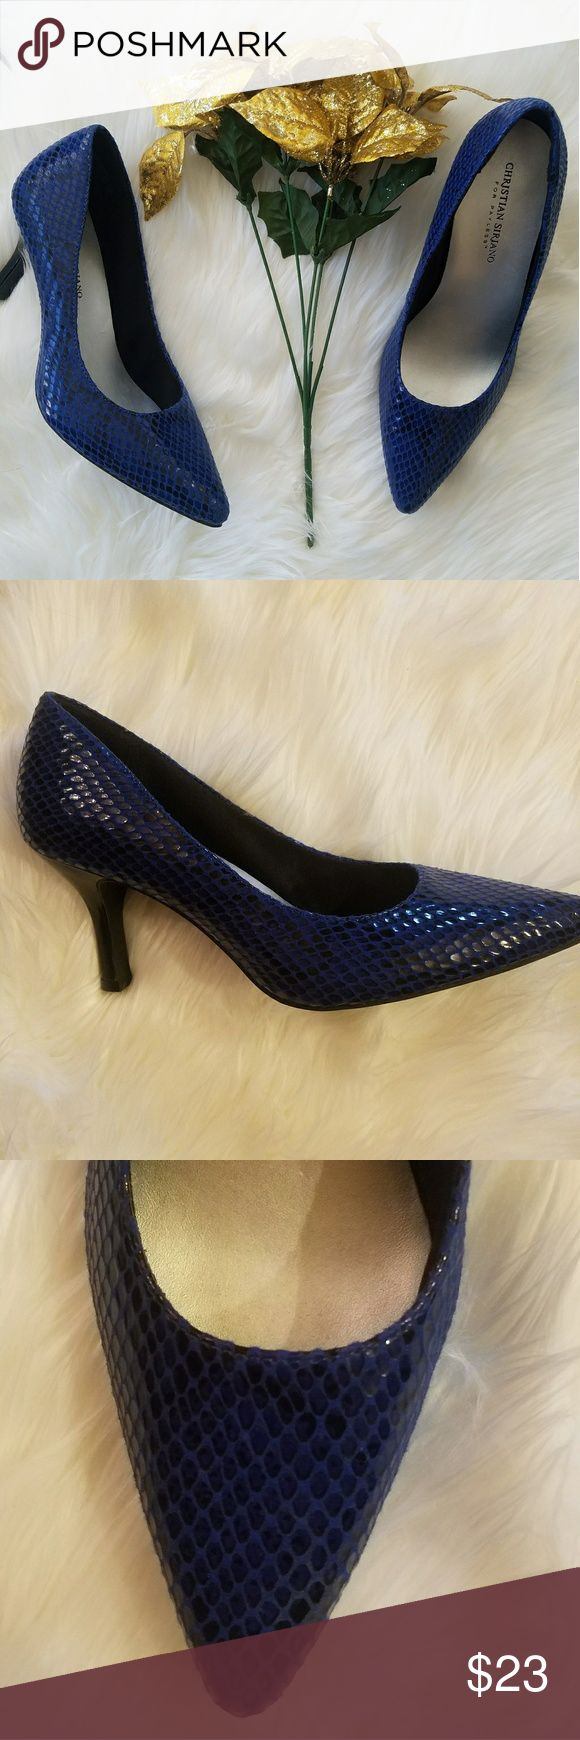 """Christian Siriano Pointed-toe Snakeskin Heels These heels are just beautiful!. They are from the Christian Siriano for Payless line. A beautiful blue/black faux snakeskin look to this lovely pair!. Heel measures approximately 3.25"""". They are in excellent condition. Size 8.5 Wide. Christian Siriano Shoes Heels"""